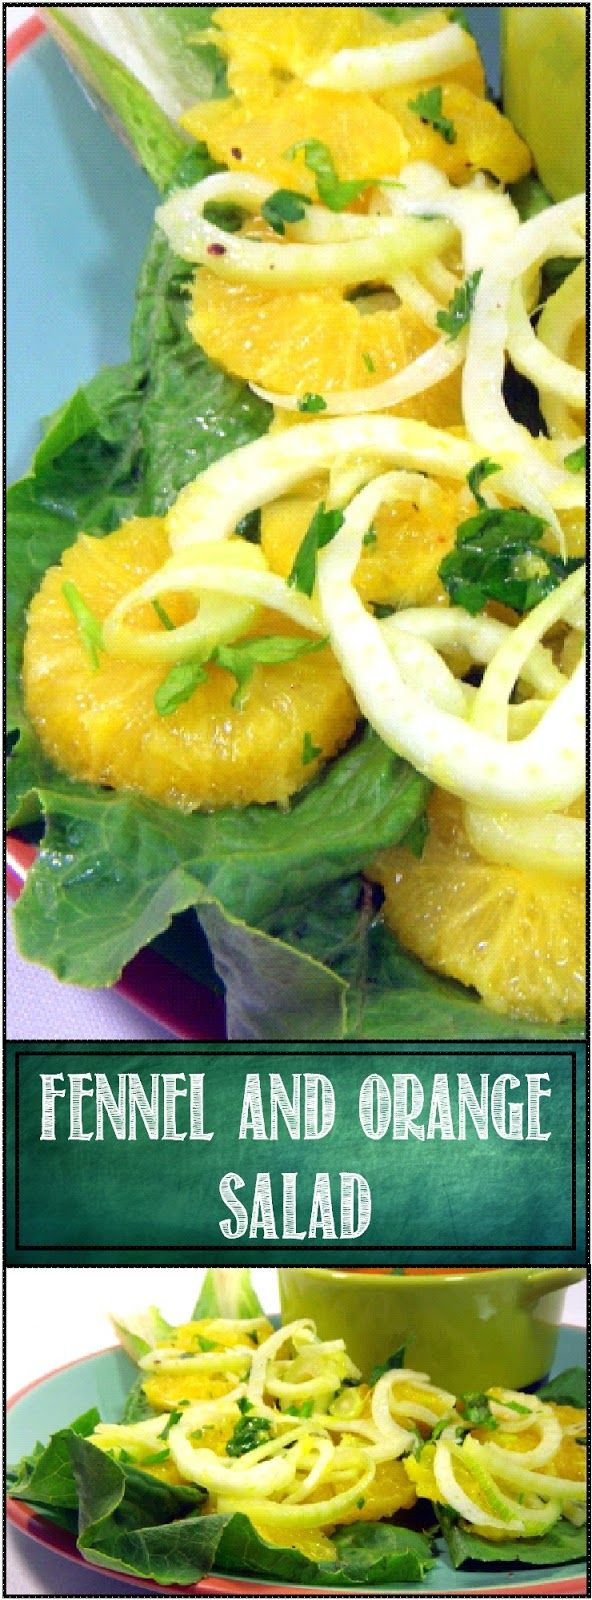 Fennel and Orange Salad (Insalata di Finocchi e Aranci)... Marinated in a vinaigrette with the interesting flavors of the Fennel, this is simple, easy and spectacular!